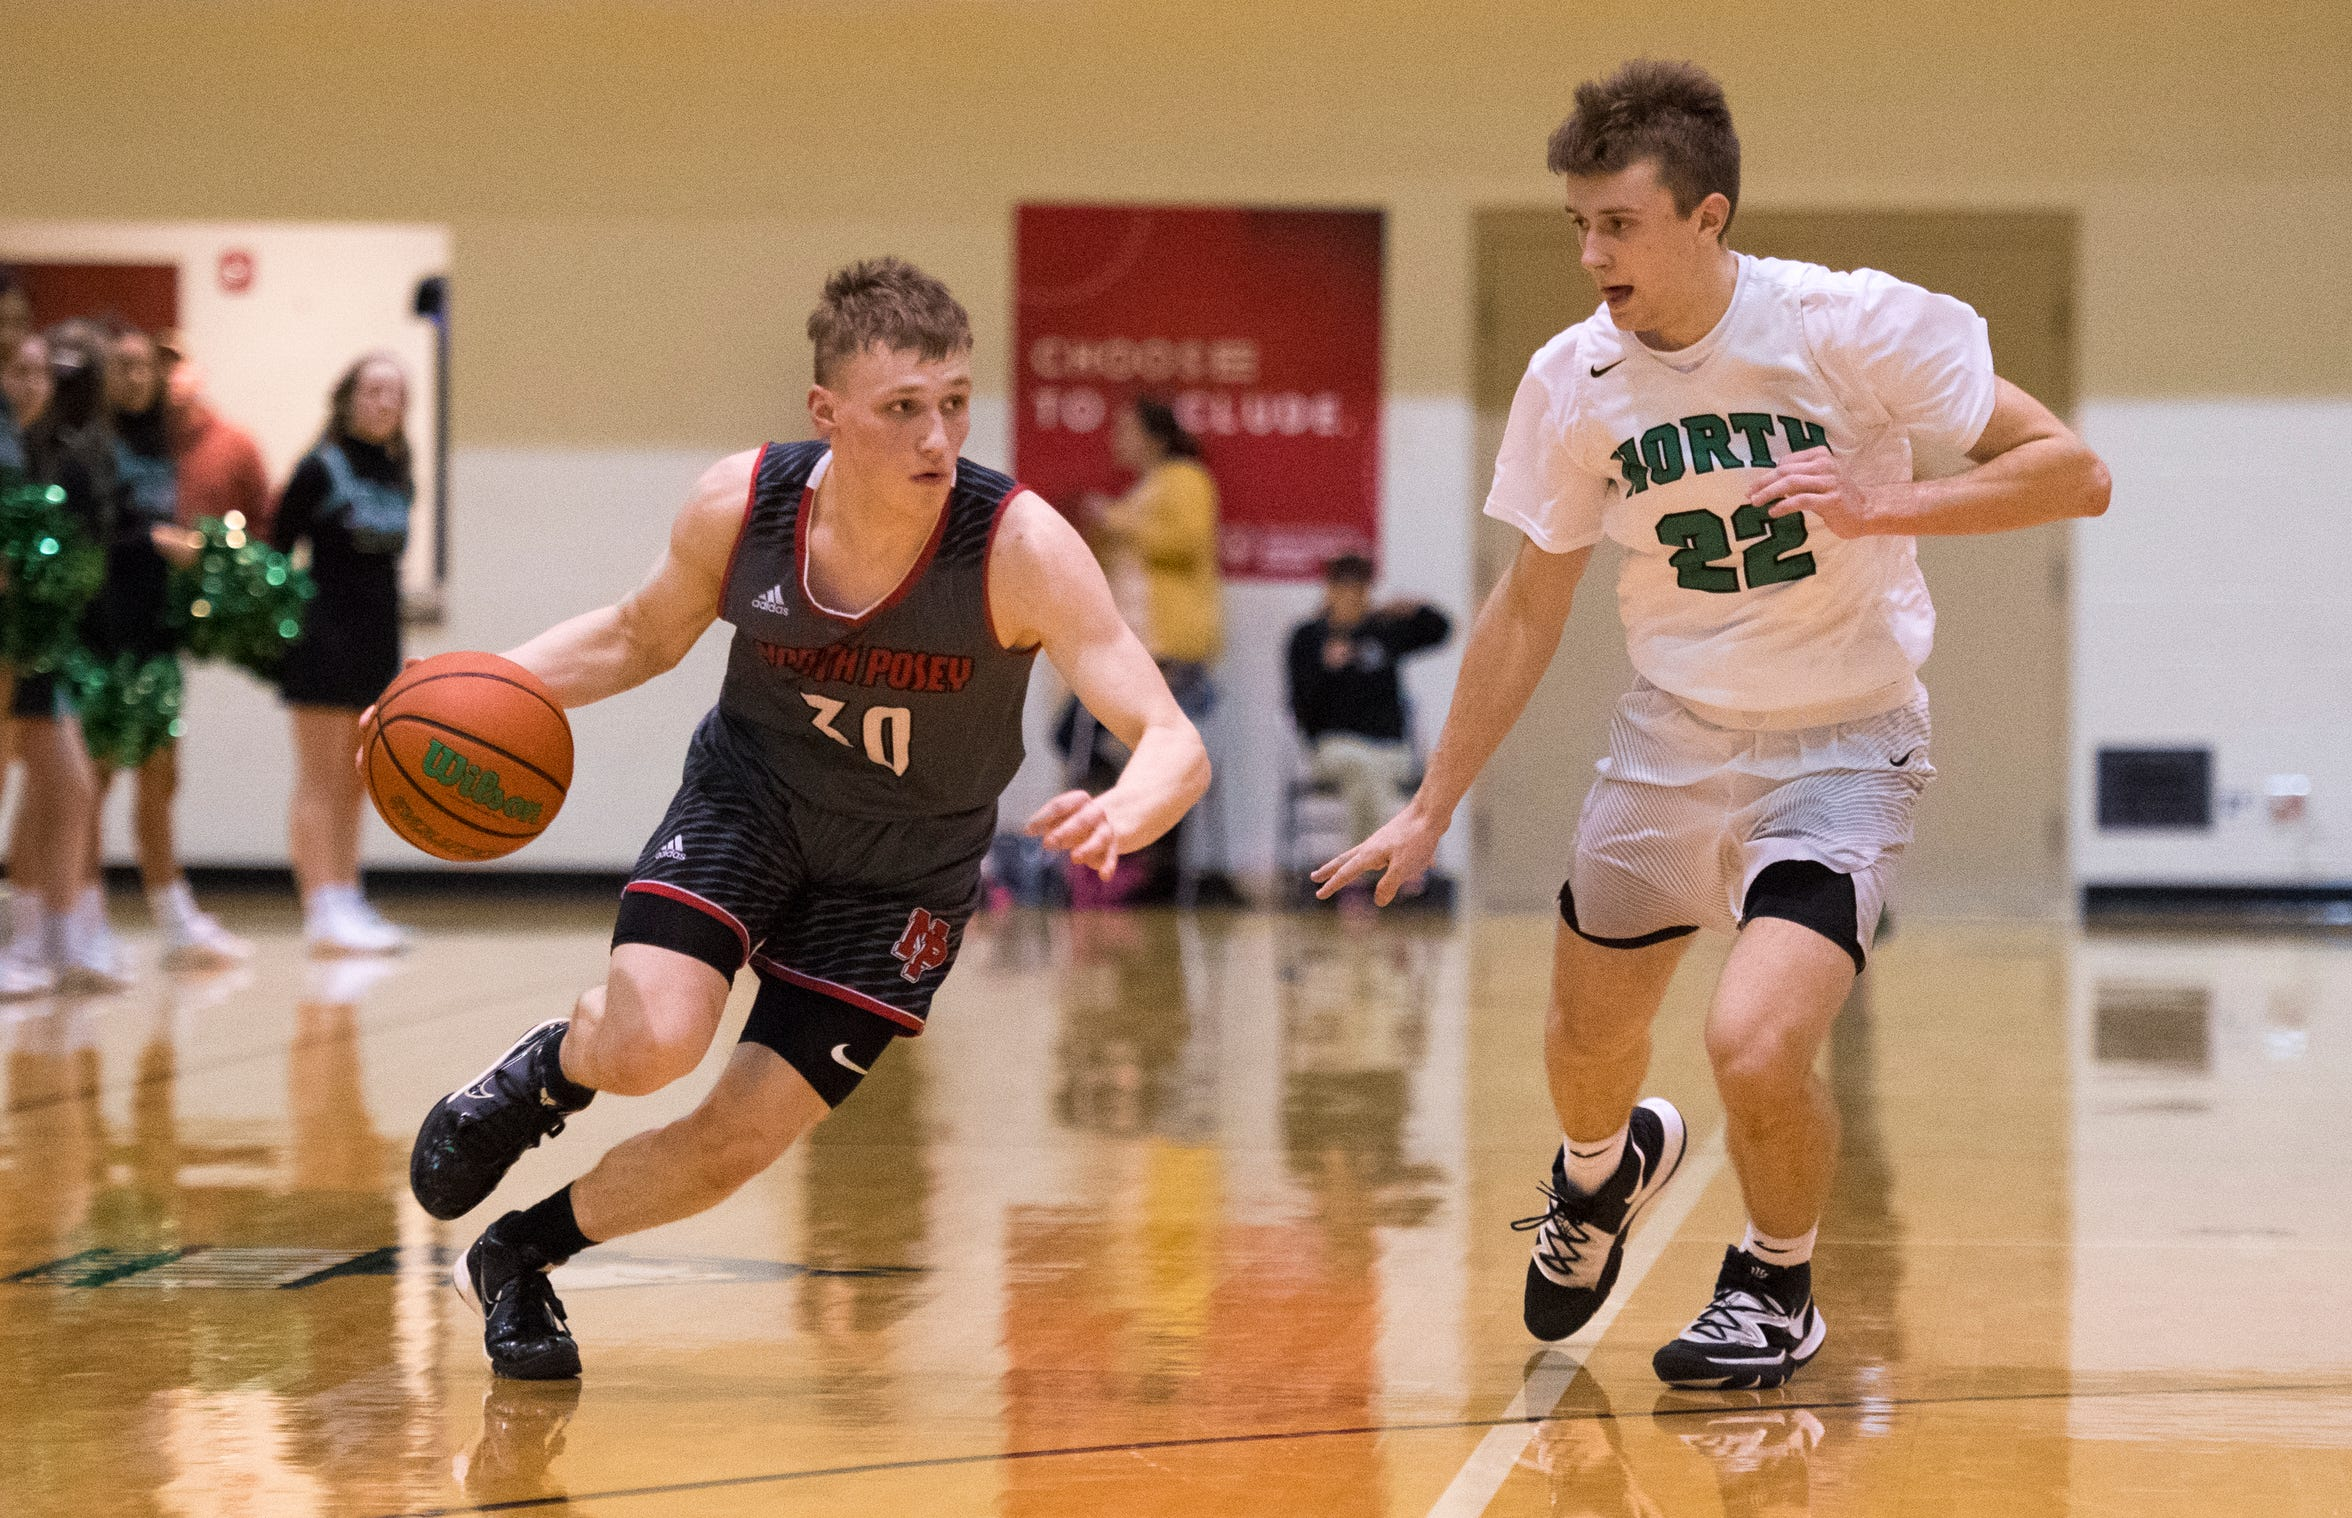 North Posey's Josiah Ricketts (30) dribbles past North's Aidan Blackford (22) during the North Huskies vs North Posey Vikings game at North High School Wednesday evening, Feb. 5. 2020.